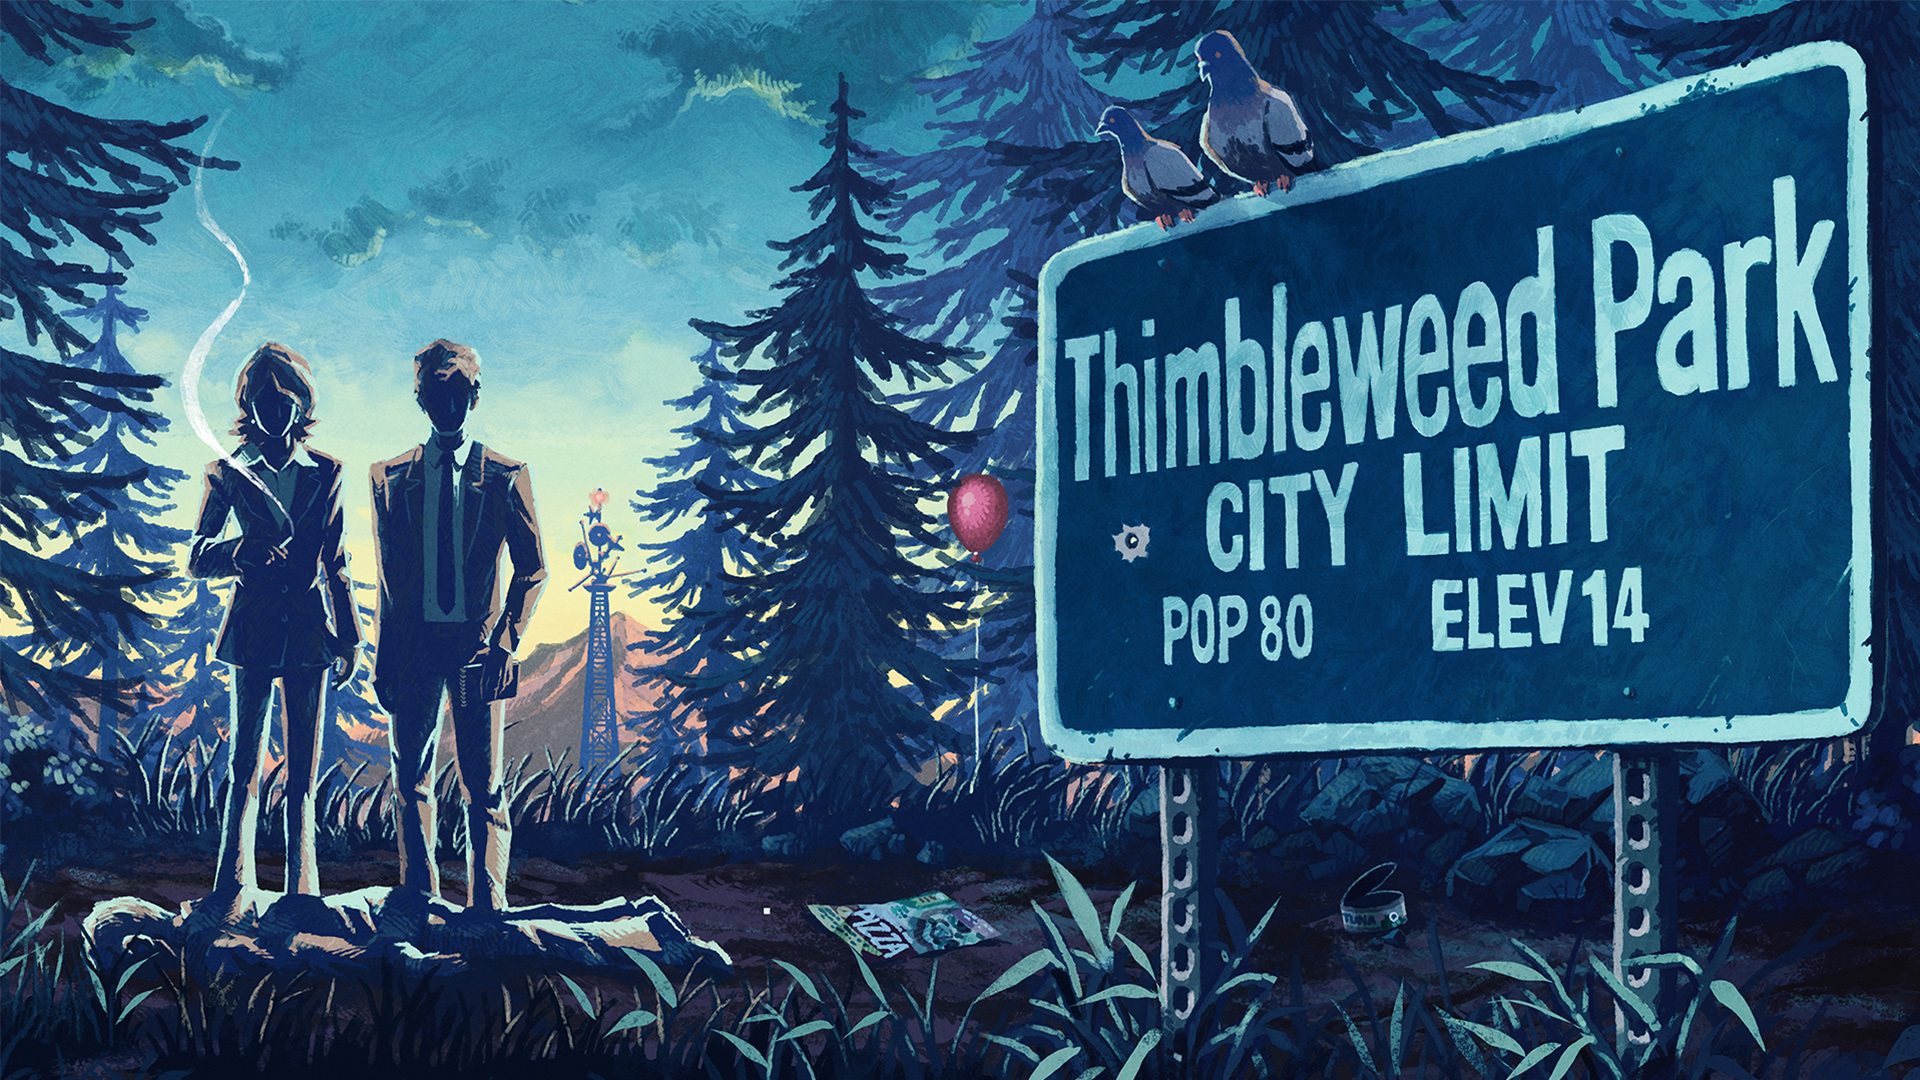 'Thimbleweed Park' Is Available Free From February 21st (11AM EST) - March 7th (10:59AM EST)!